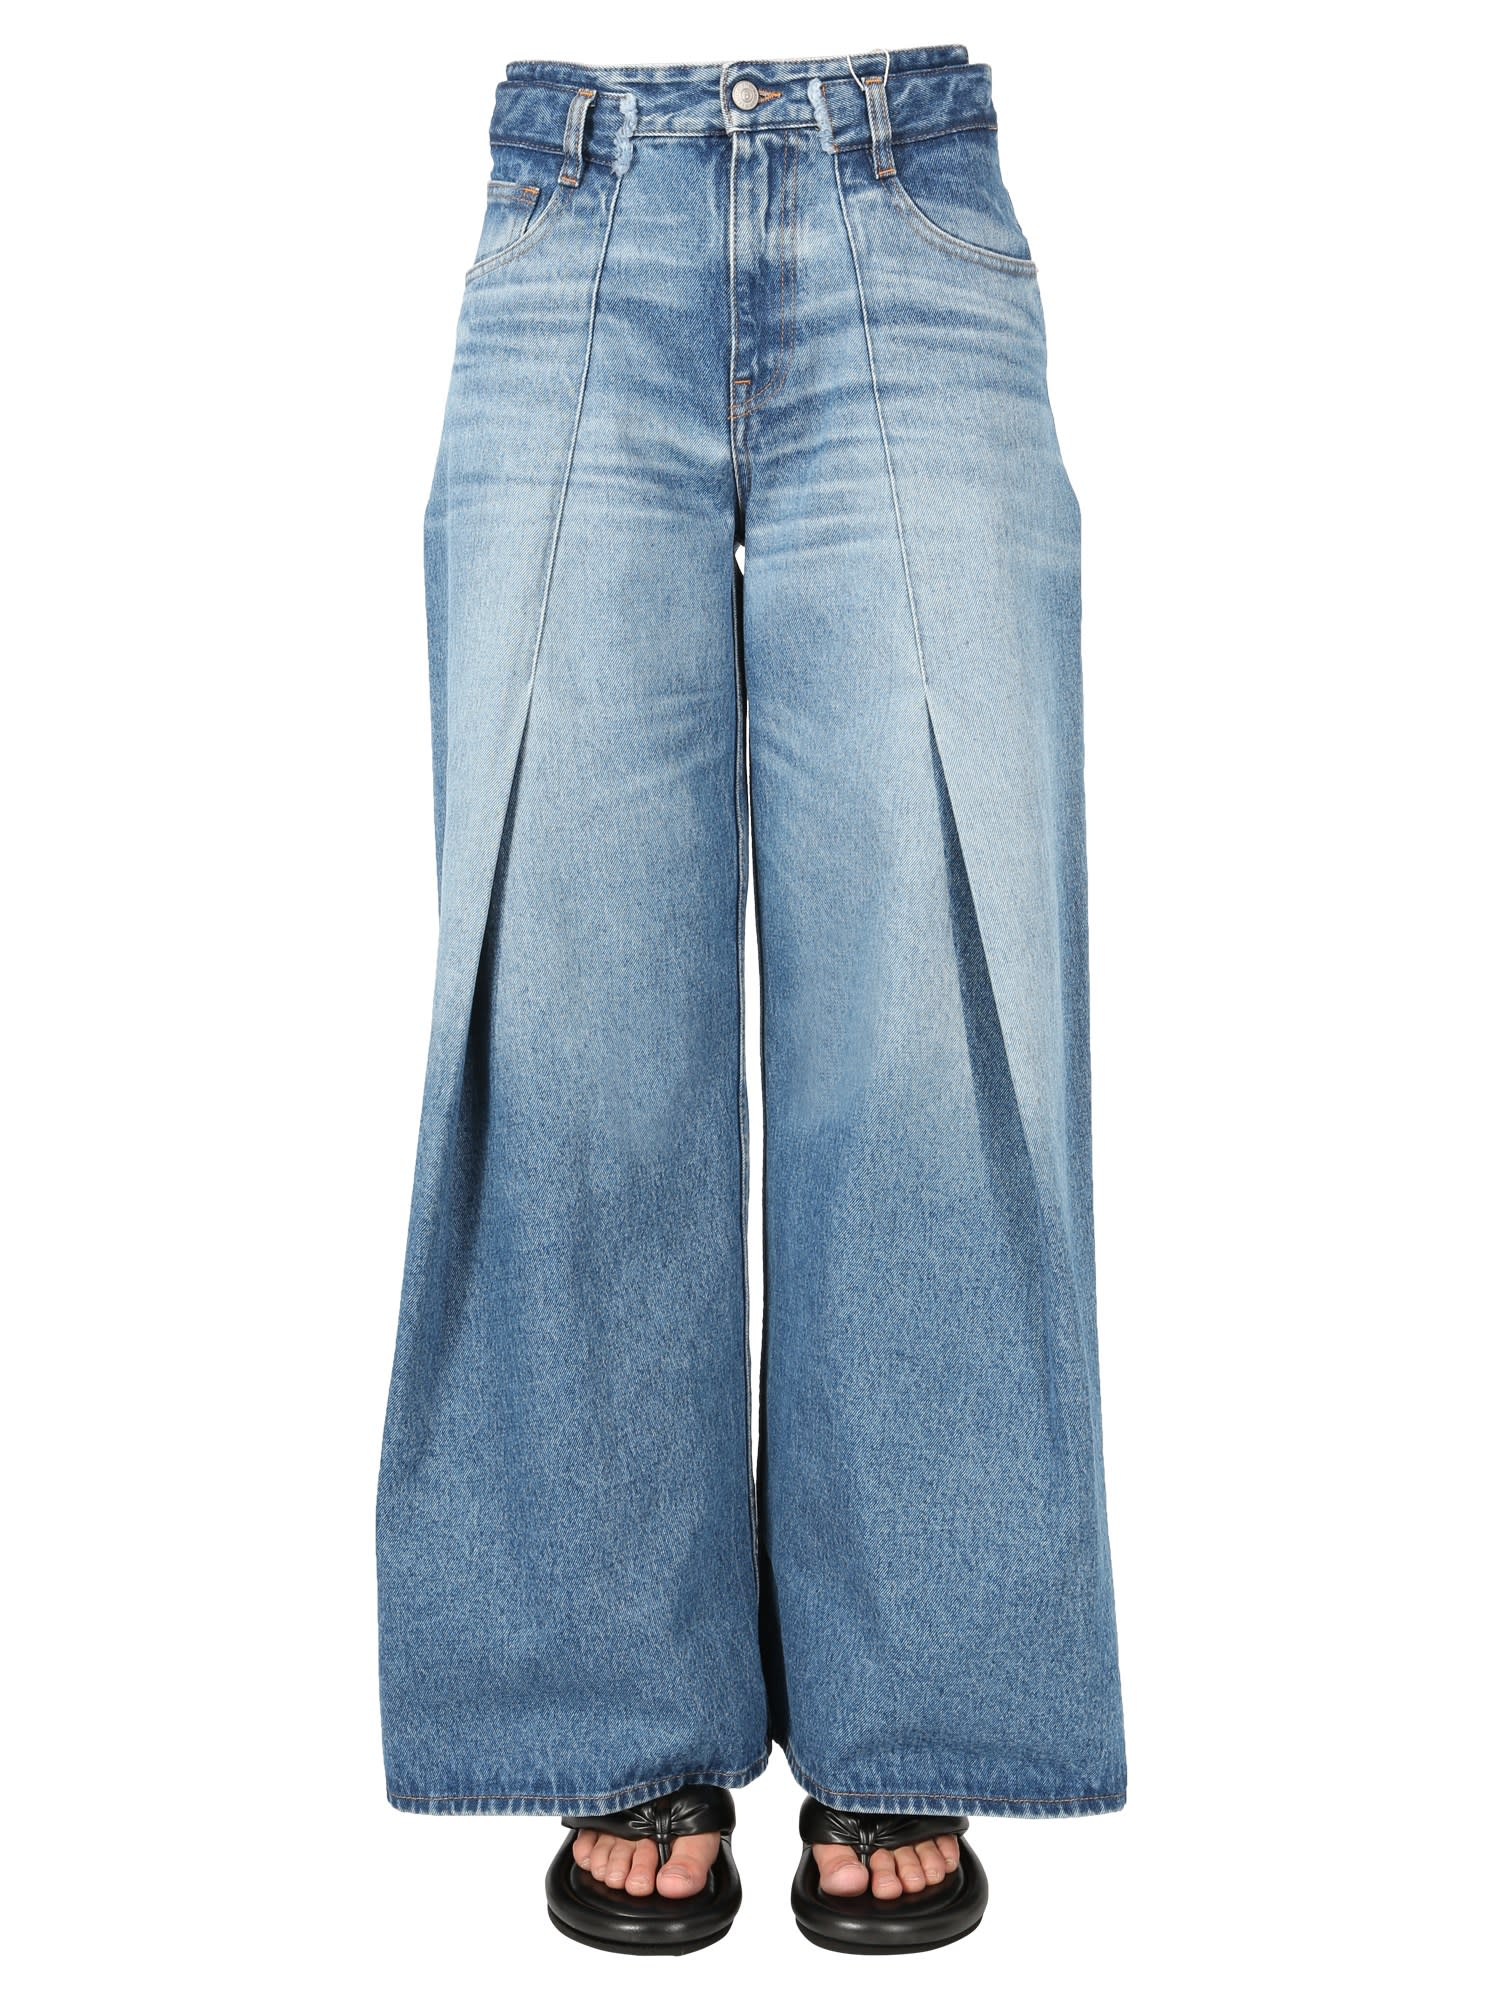 Mm6 Maison Margiela Cottons FLARED JEANS